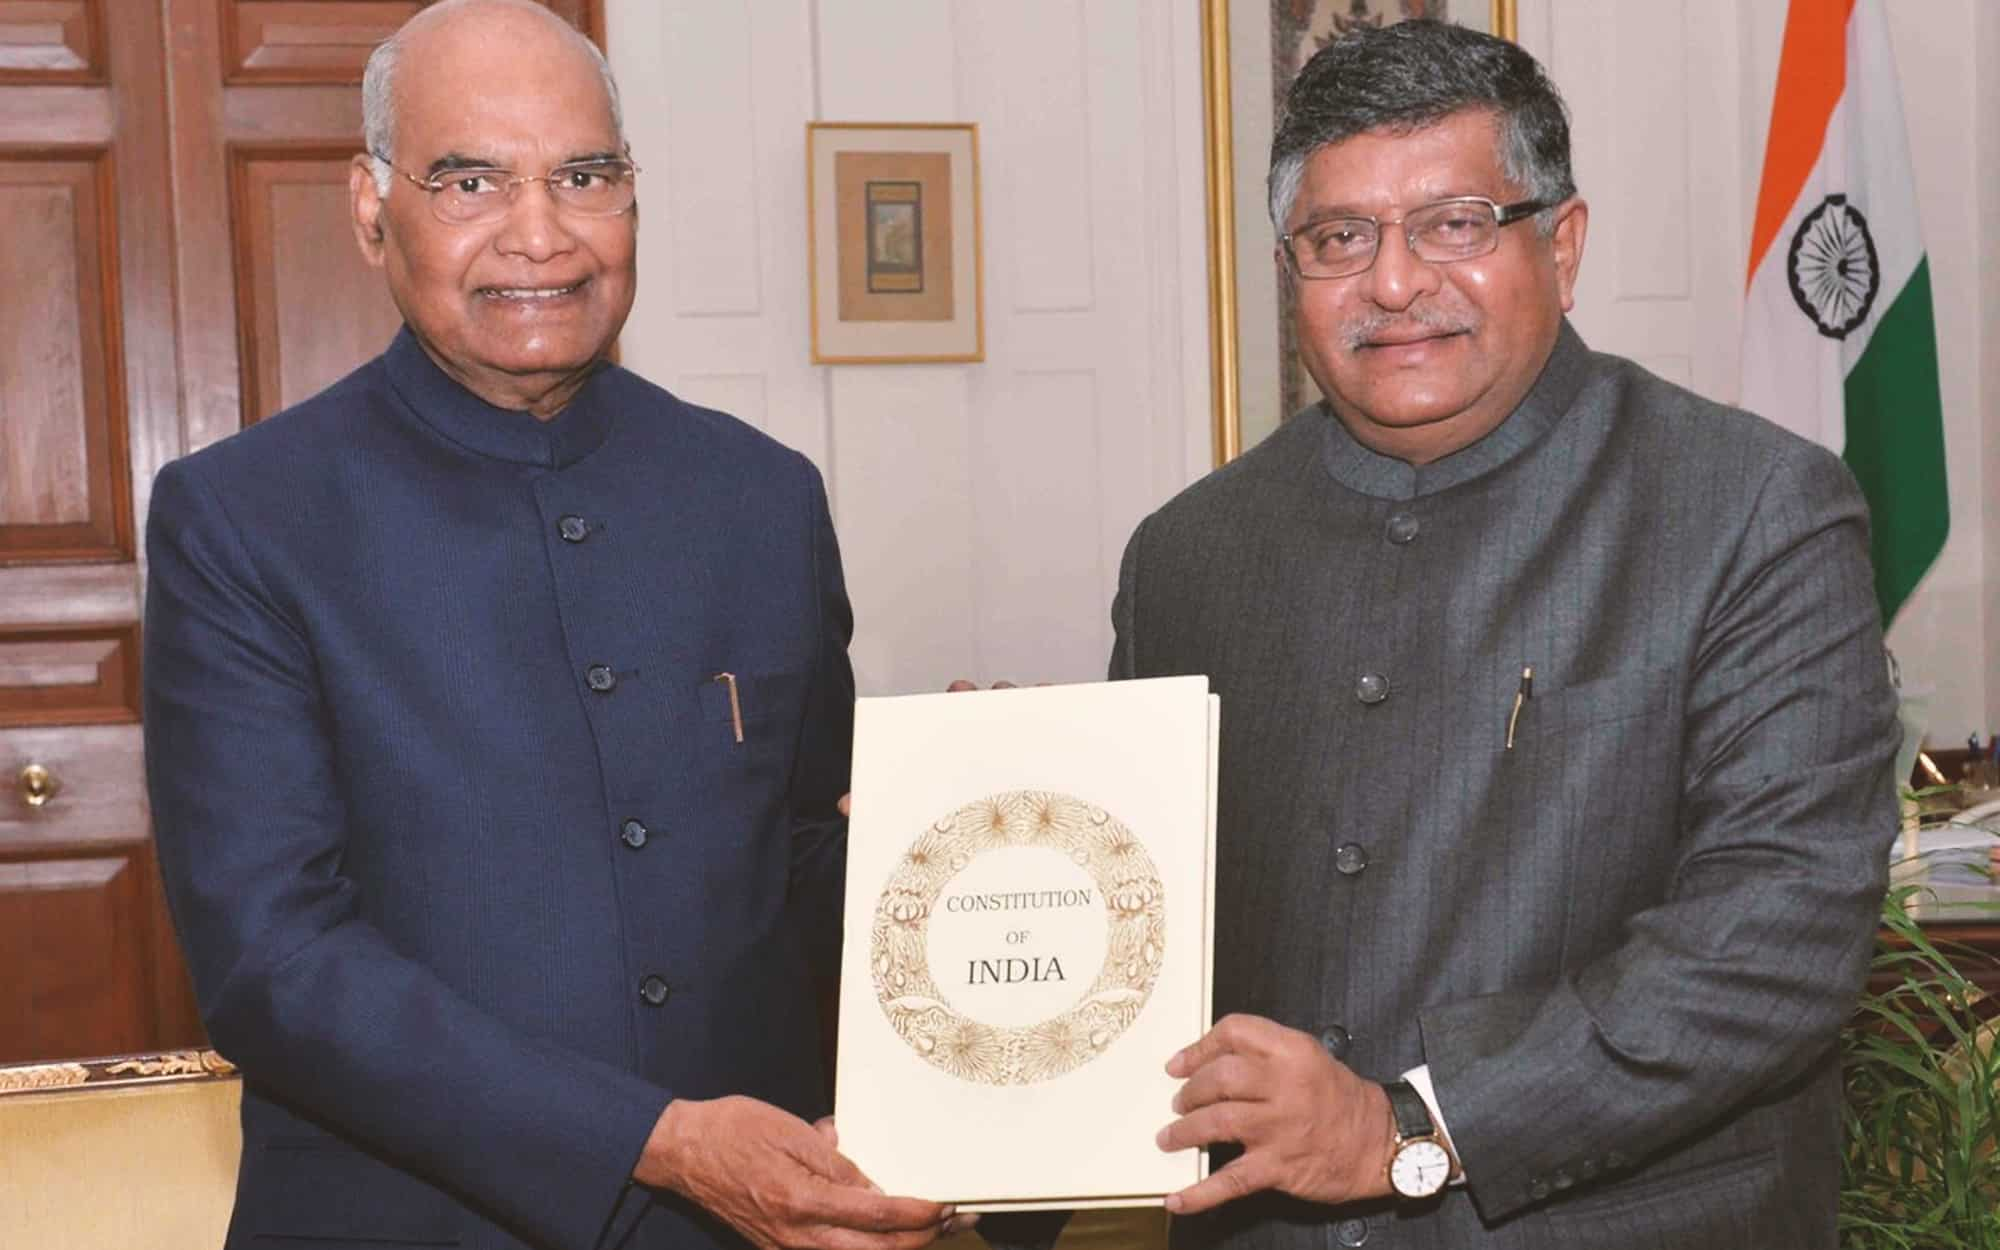 Dept of Land Resources gets Digital India Award from President